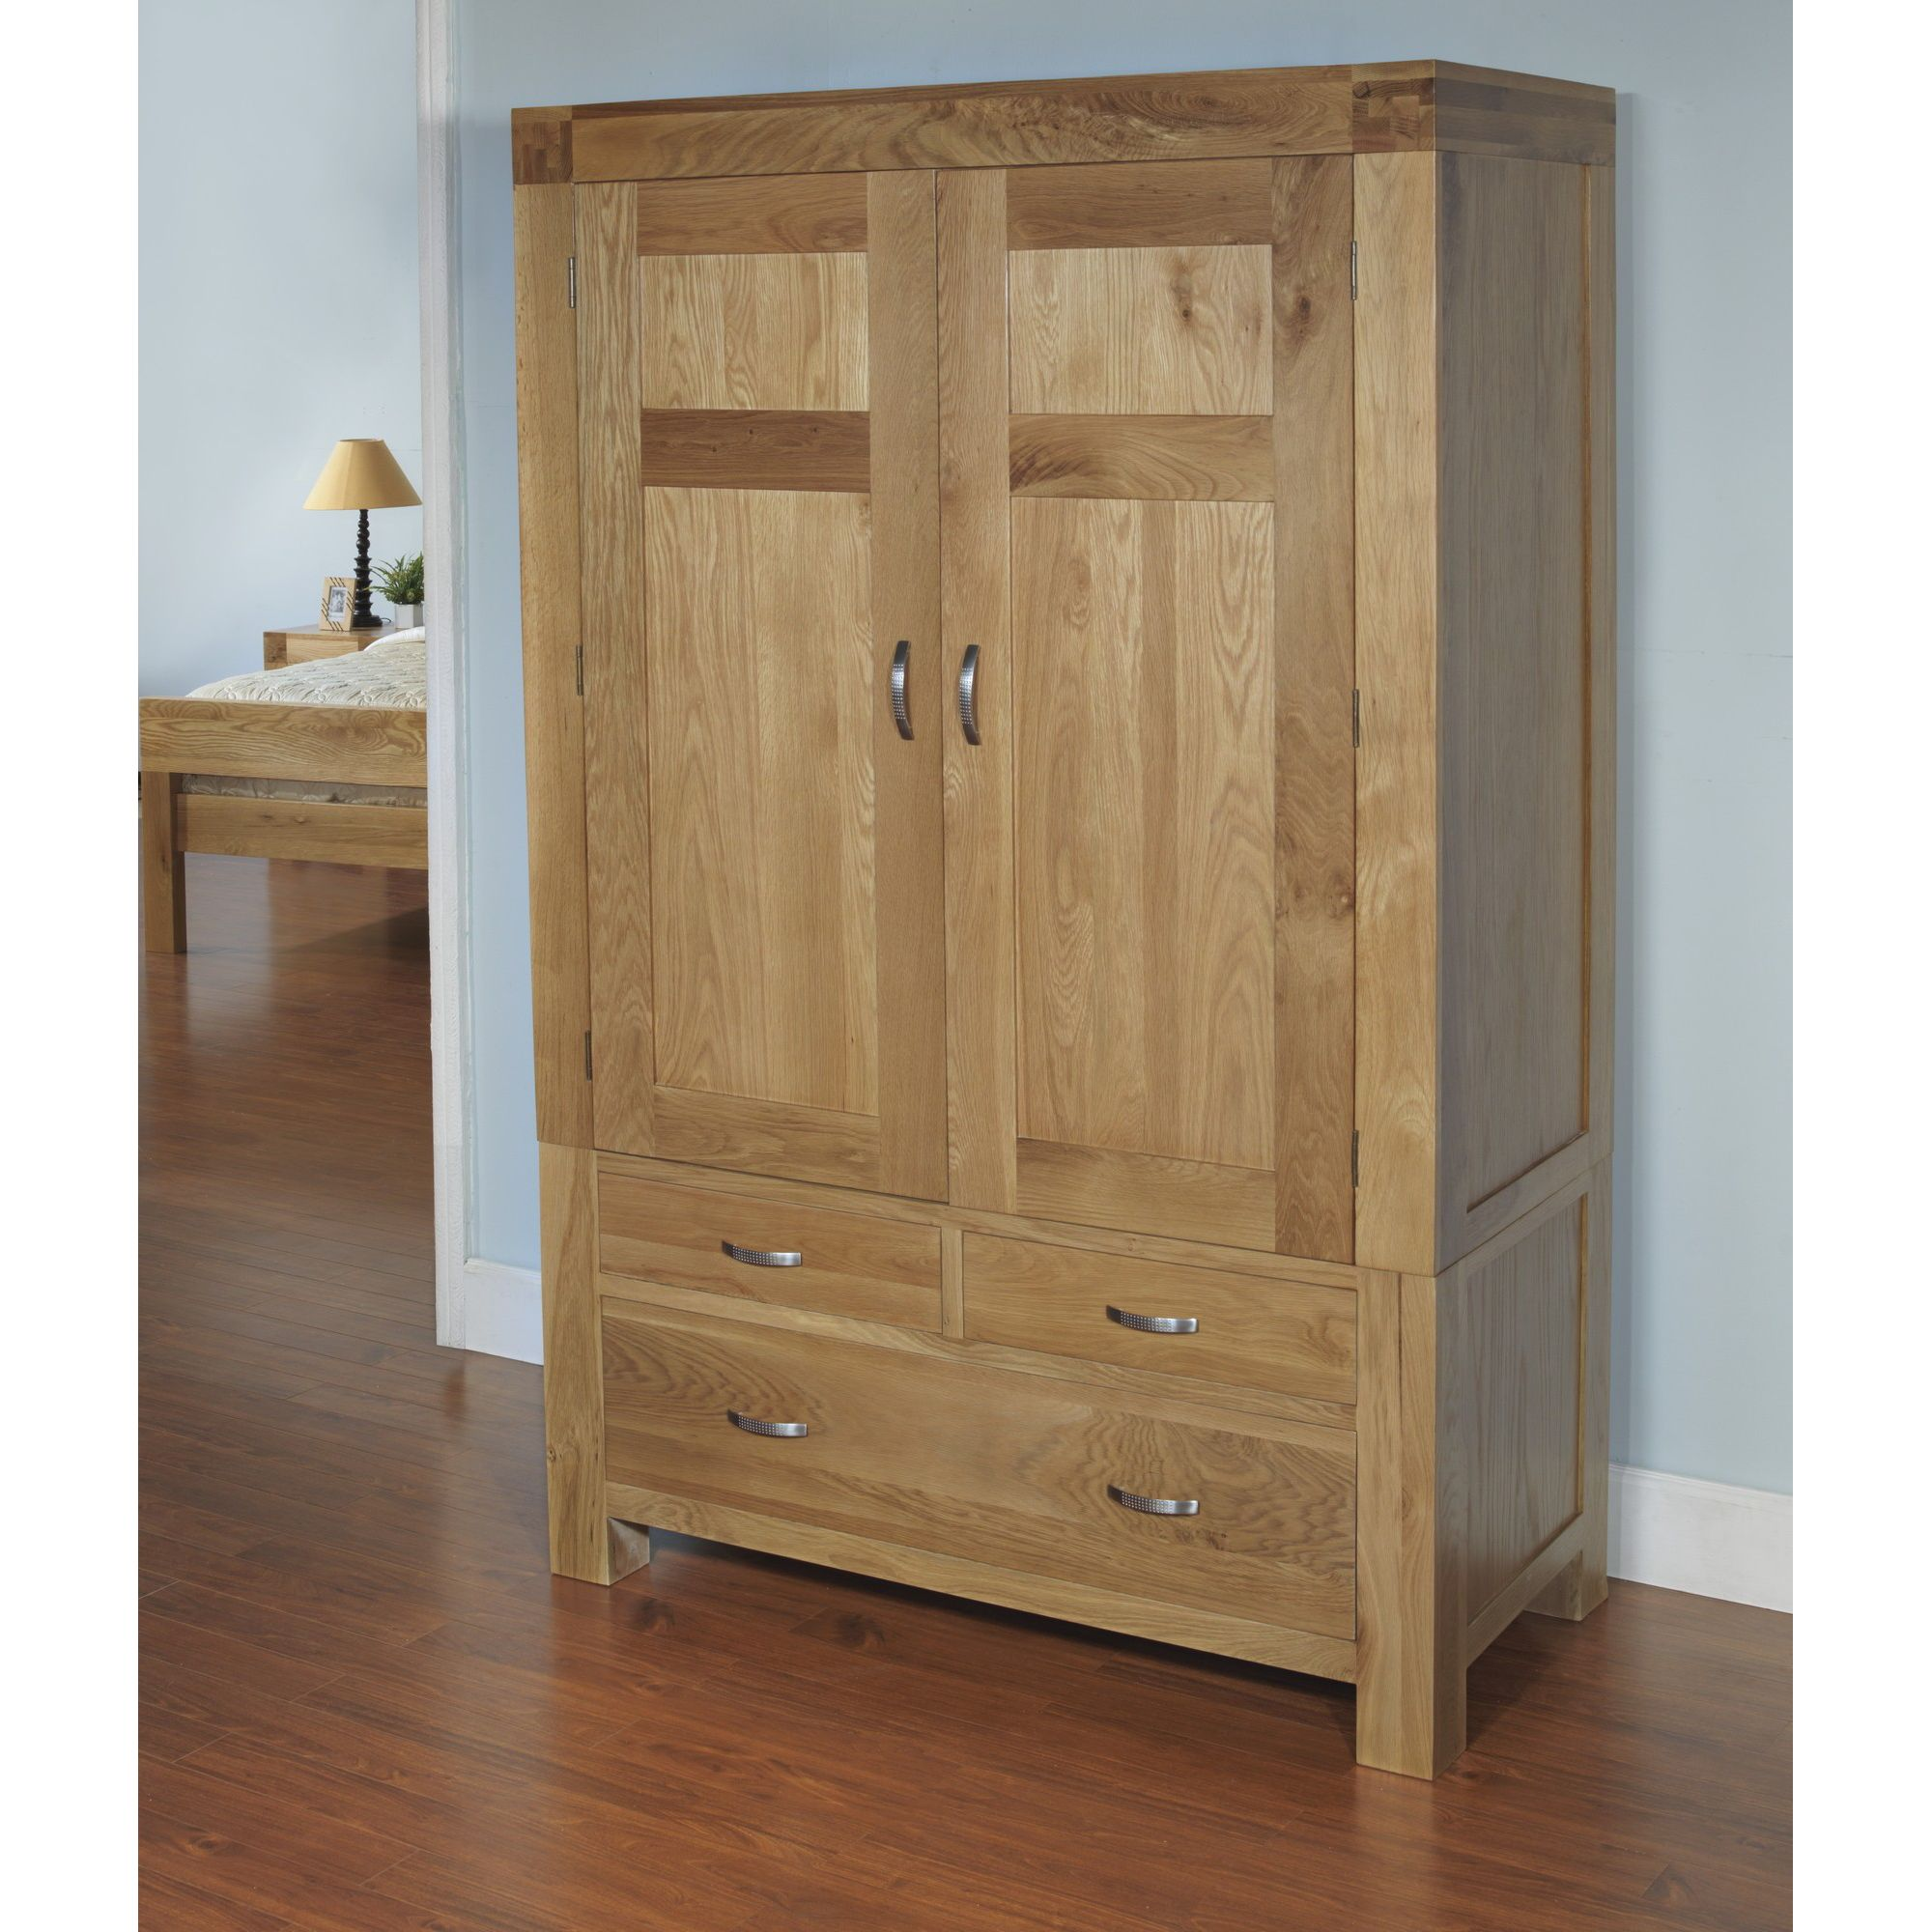 Hawkshead Rustic Oak Blonde Double Wardrobe at Tescos Direct